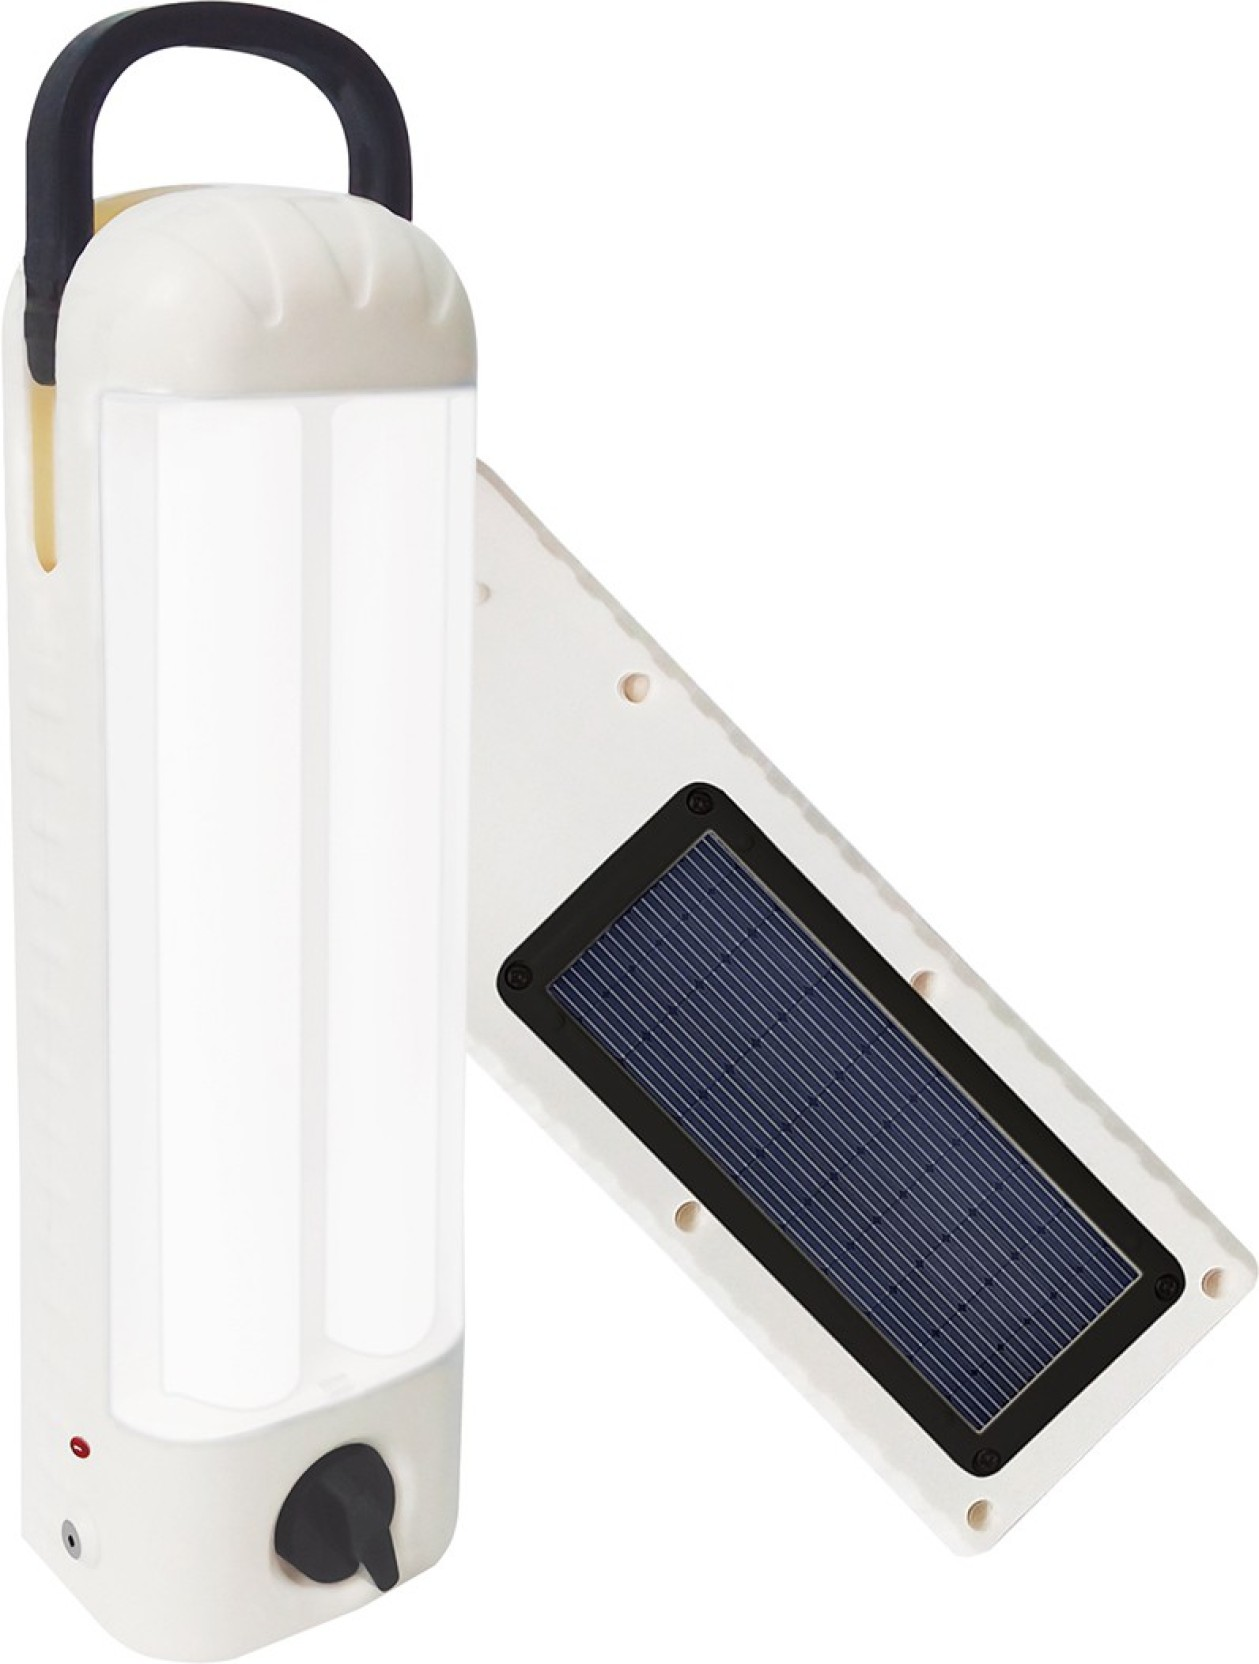 Eye Bhaskar 22 Led Solar Charger Rechargeable Emergency Light Price Home Hobby Police Car Lights With Leds On Offer